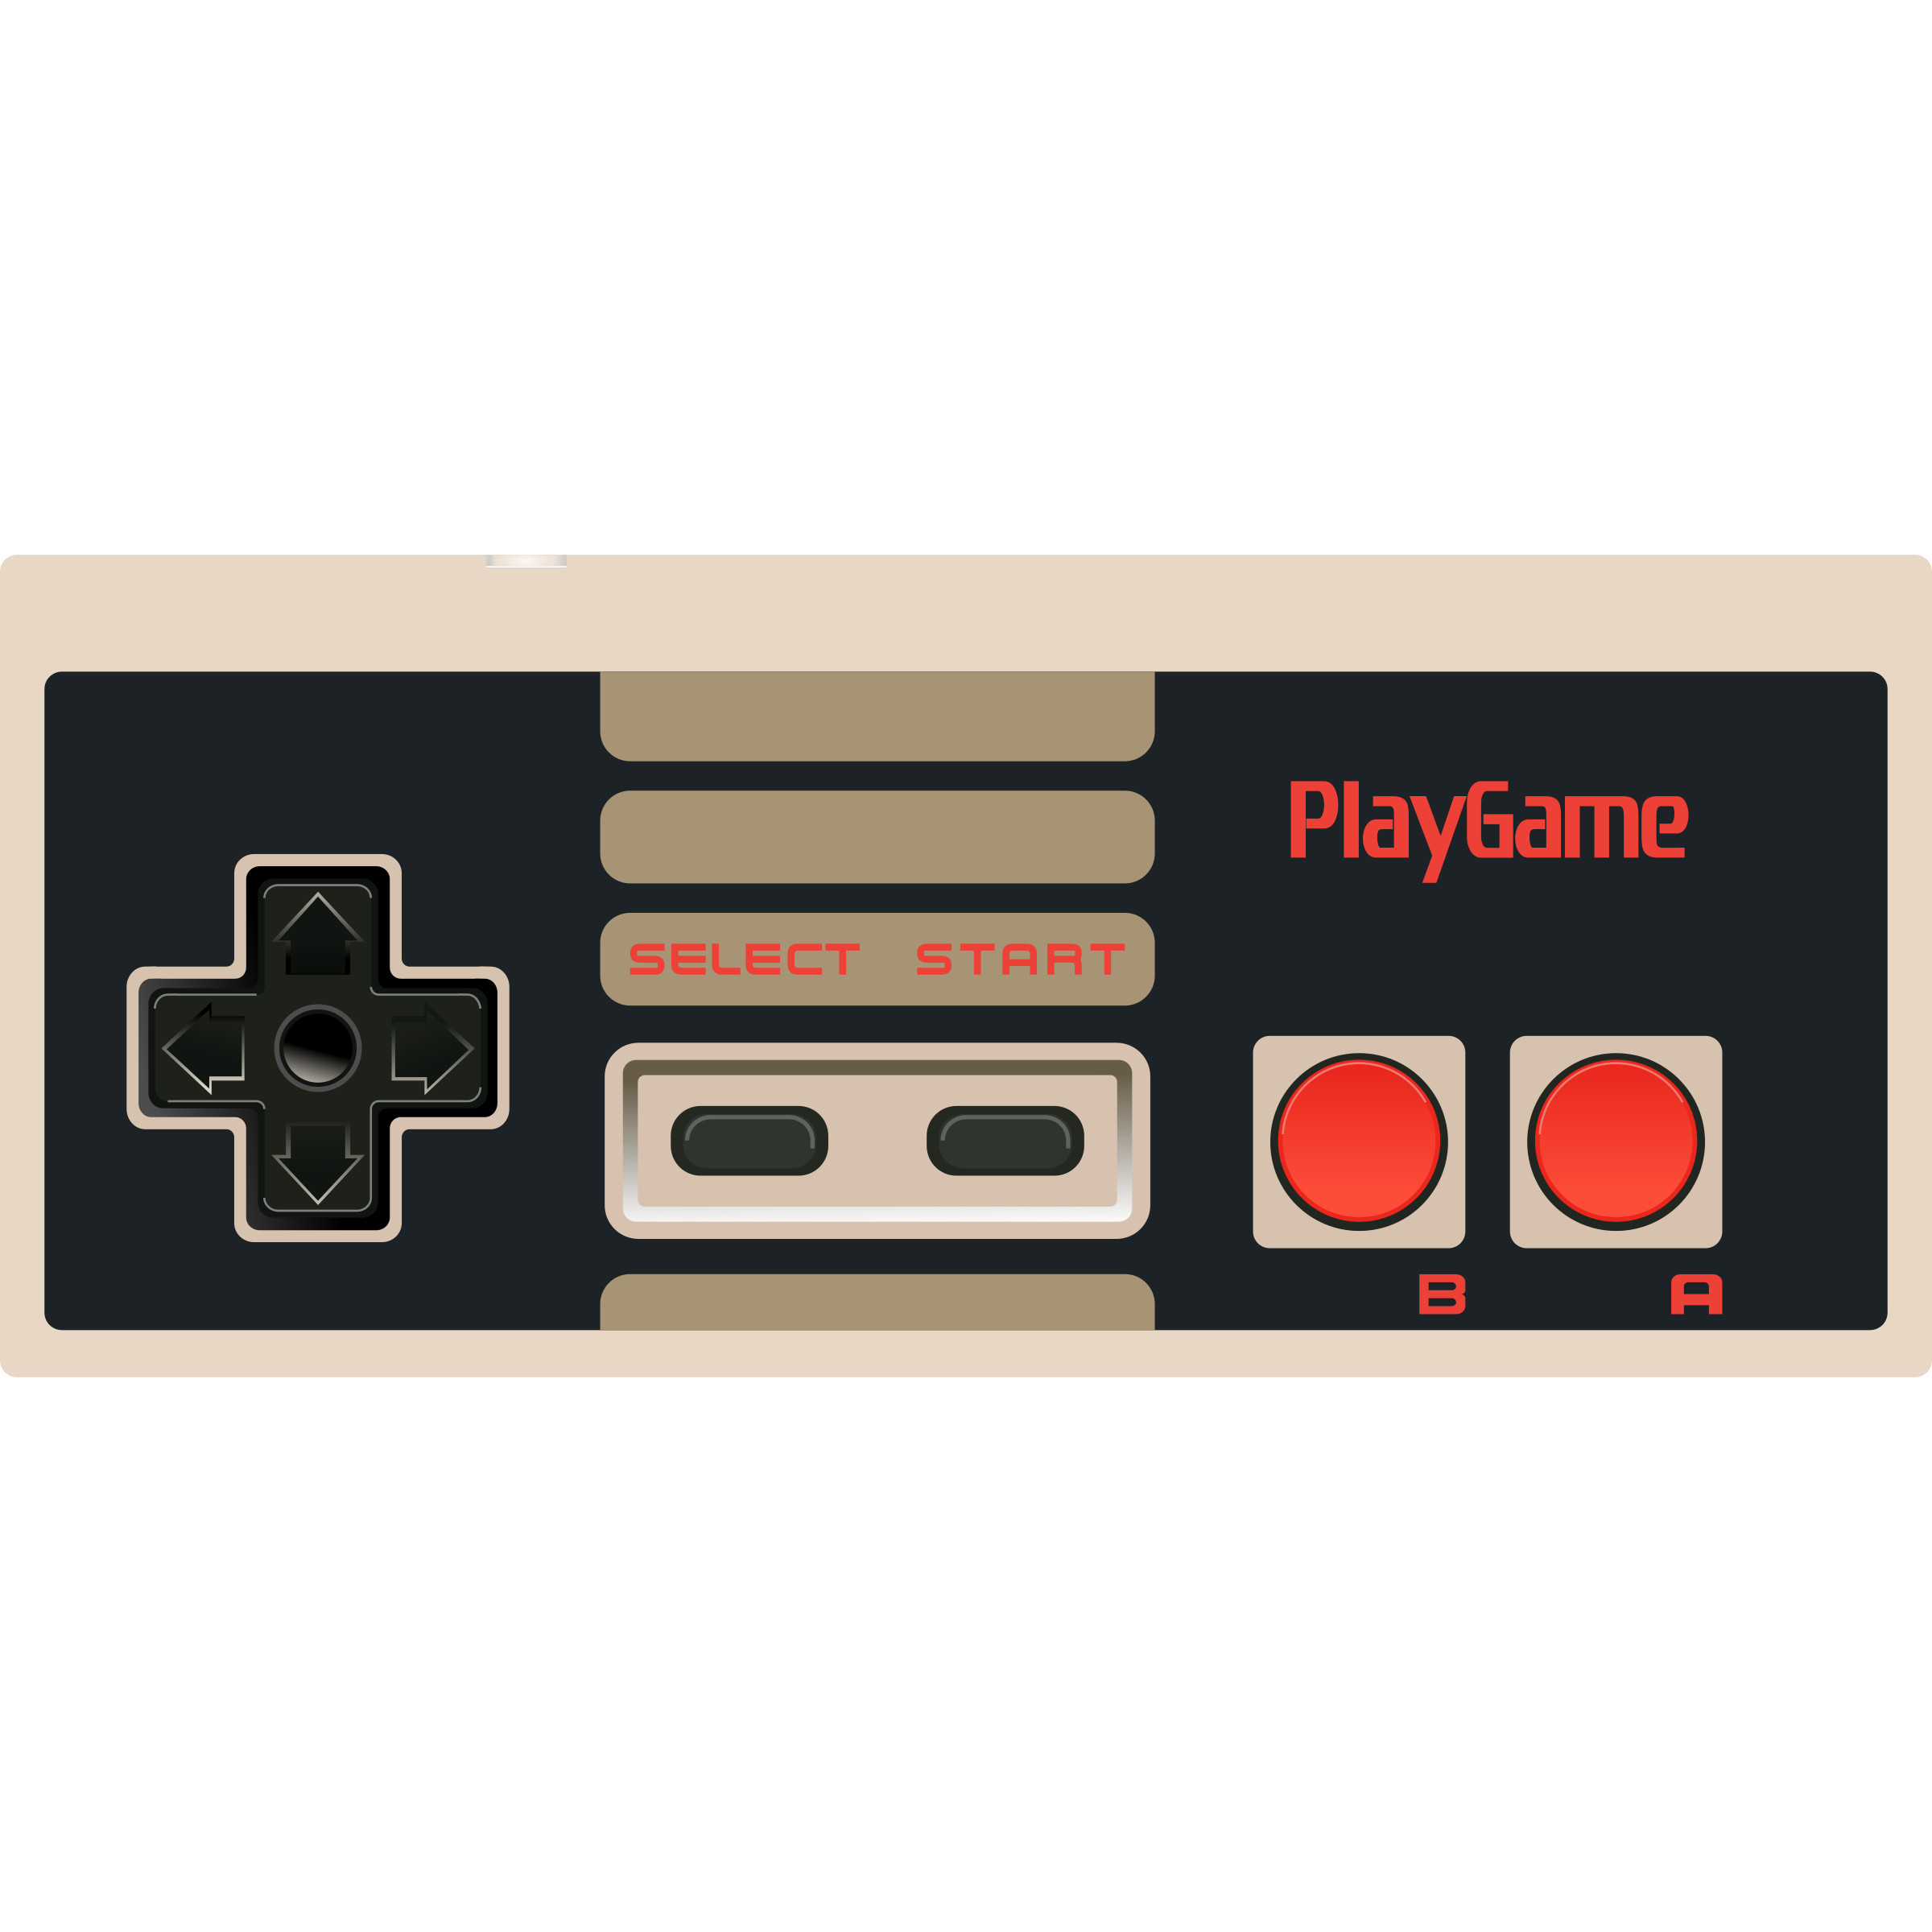 Nes controller png. Video game icons free